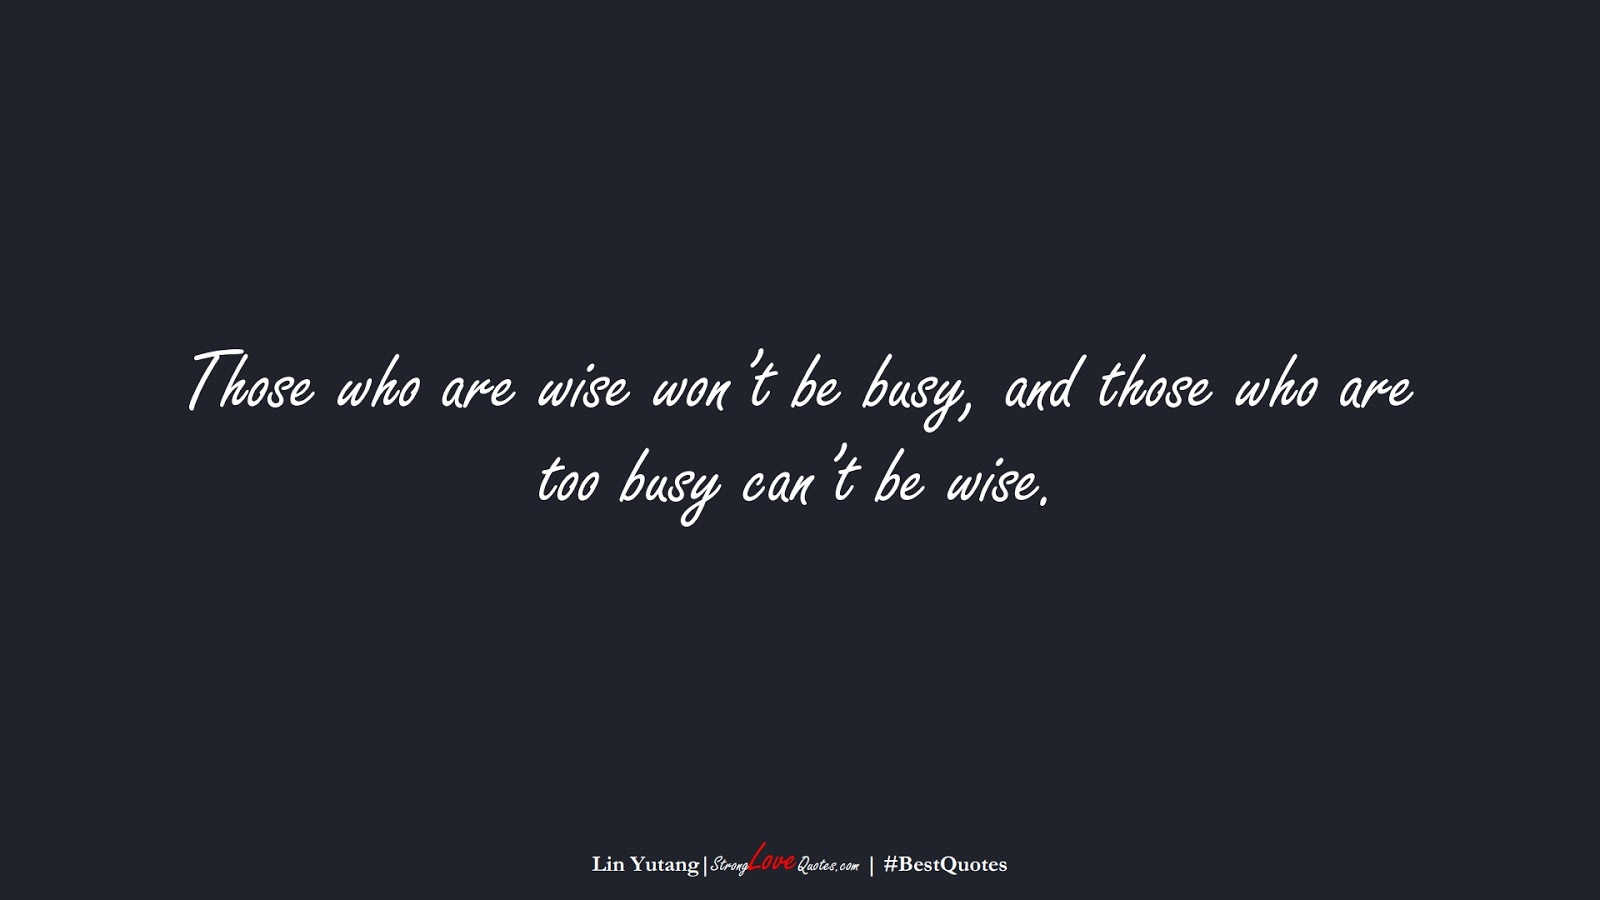 Those who are wise won't be busy, and those who are too busy can't be wise. (Lin Yutang);  #BestQuotes